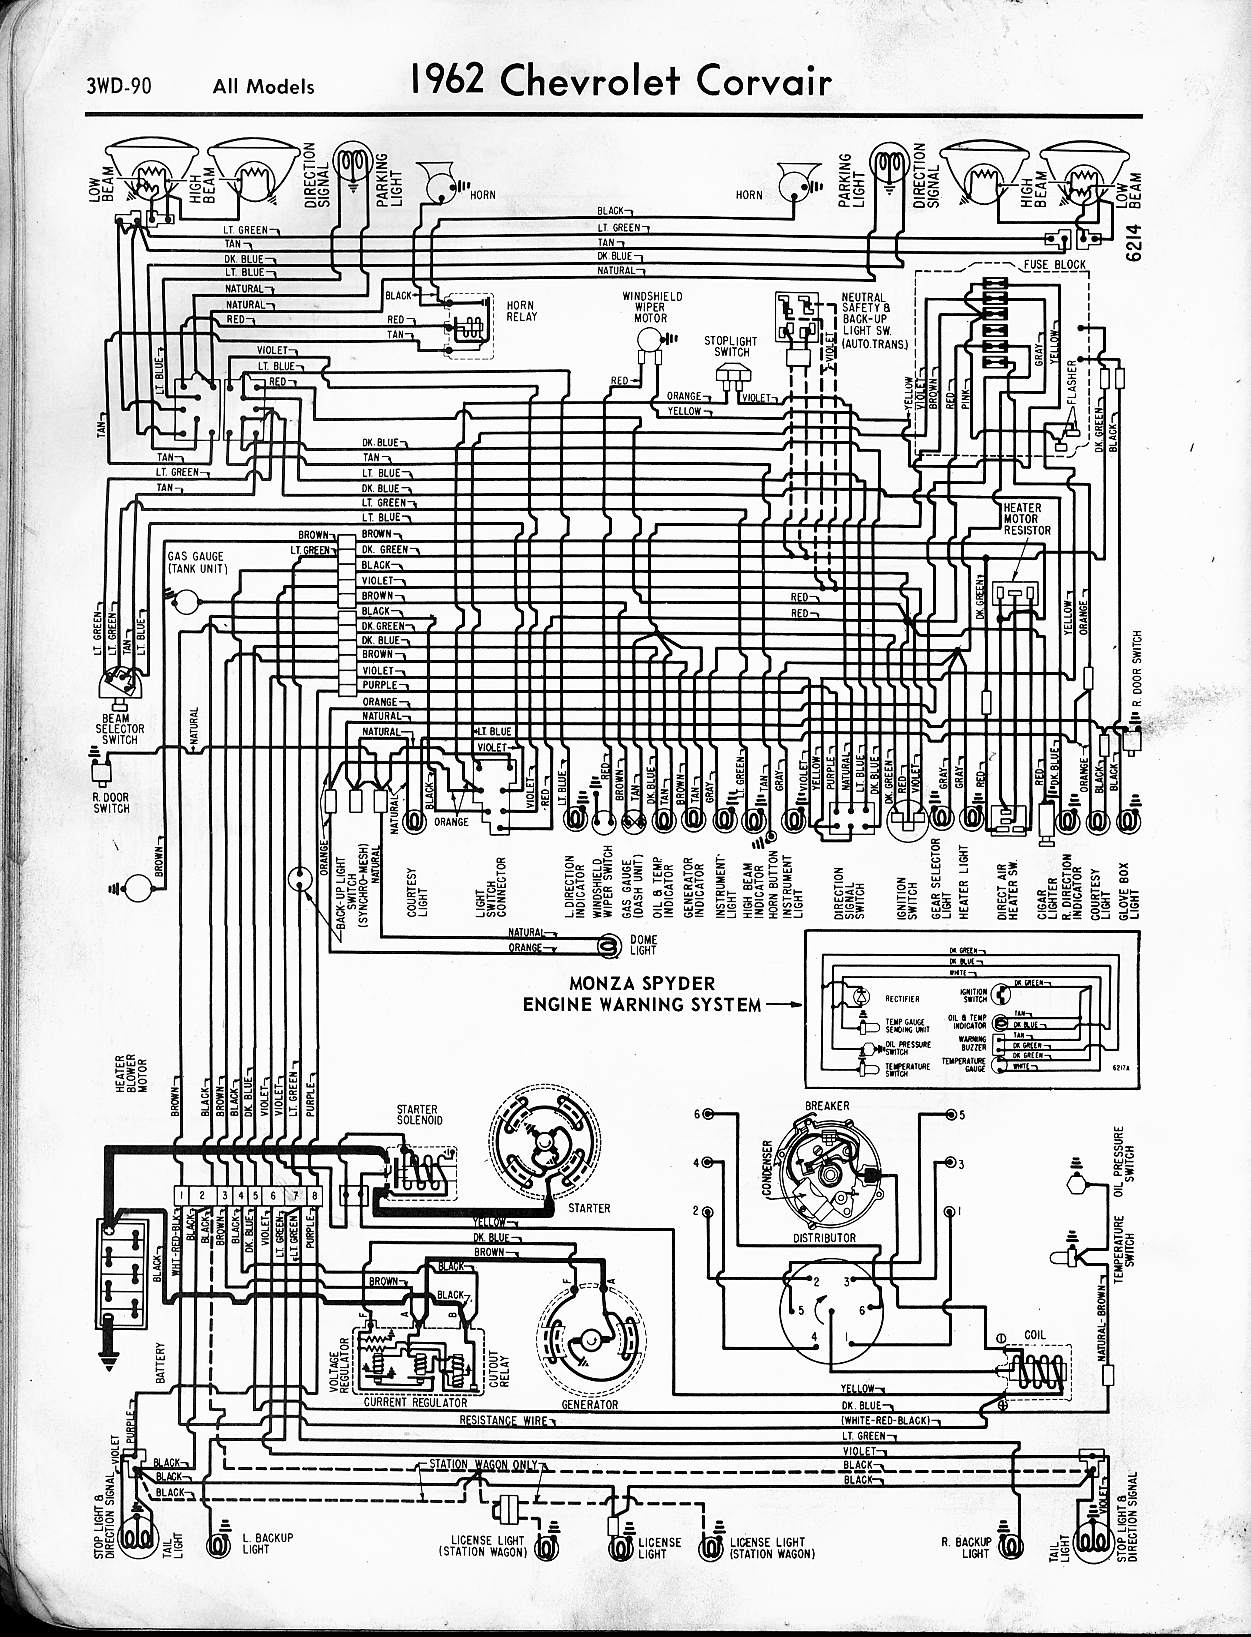 62 Corvette Wiring Diagram List Of Schematic Circuit For 1961 Chevy C10 Apache 57 65 Diagrams Rh Oldcarmanualproject Com